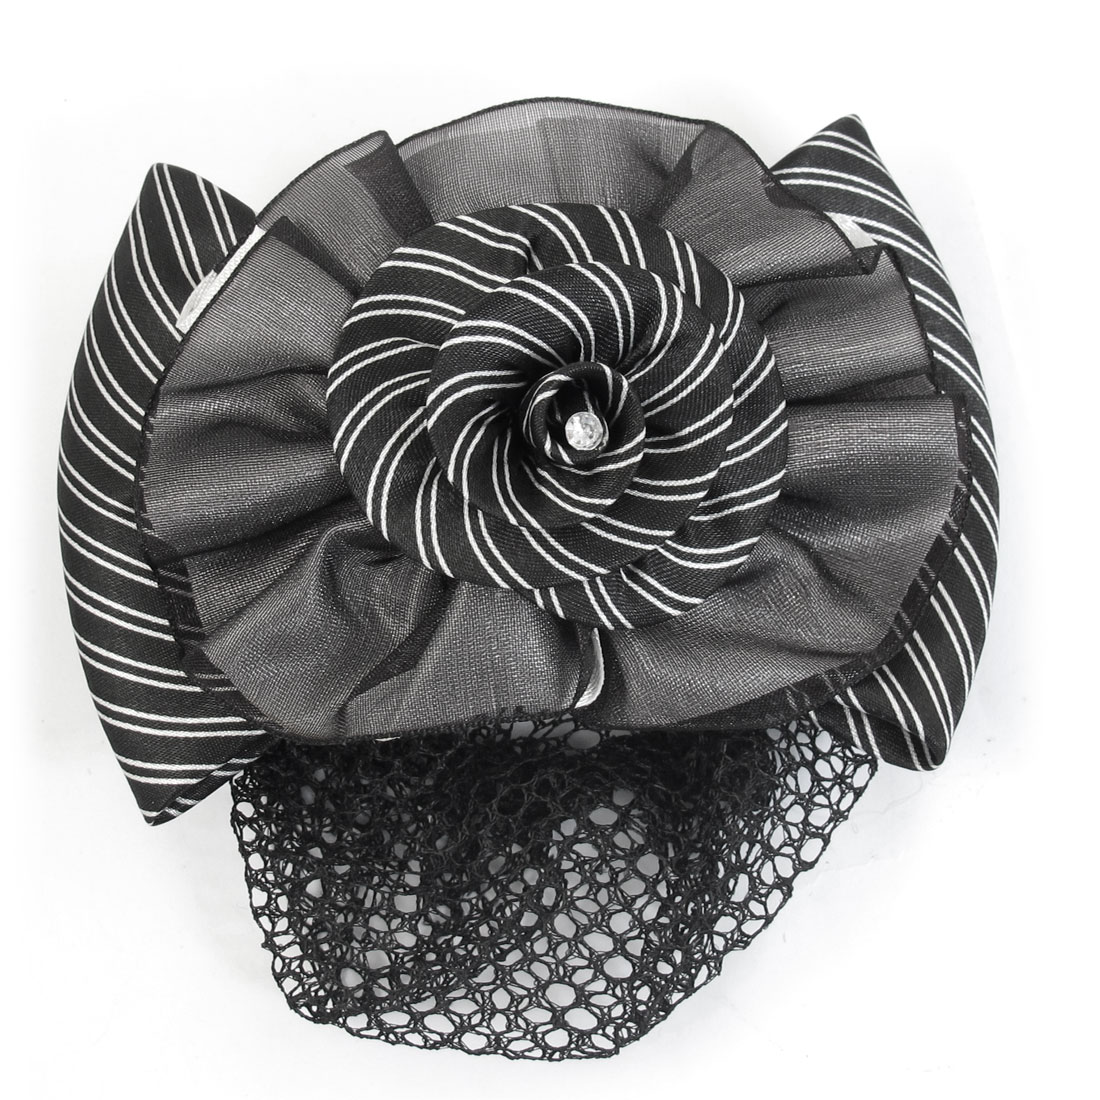 Ladies Black White Striped Design Flower Decor Headdress Hairnet Hairclip